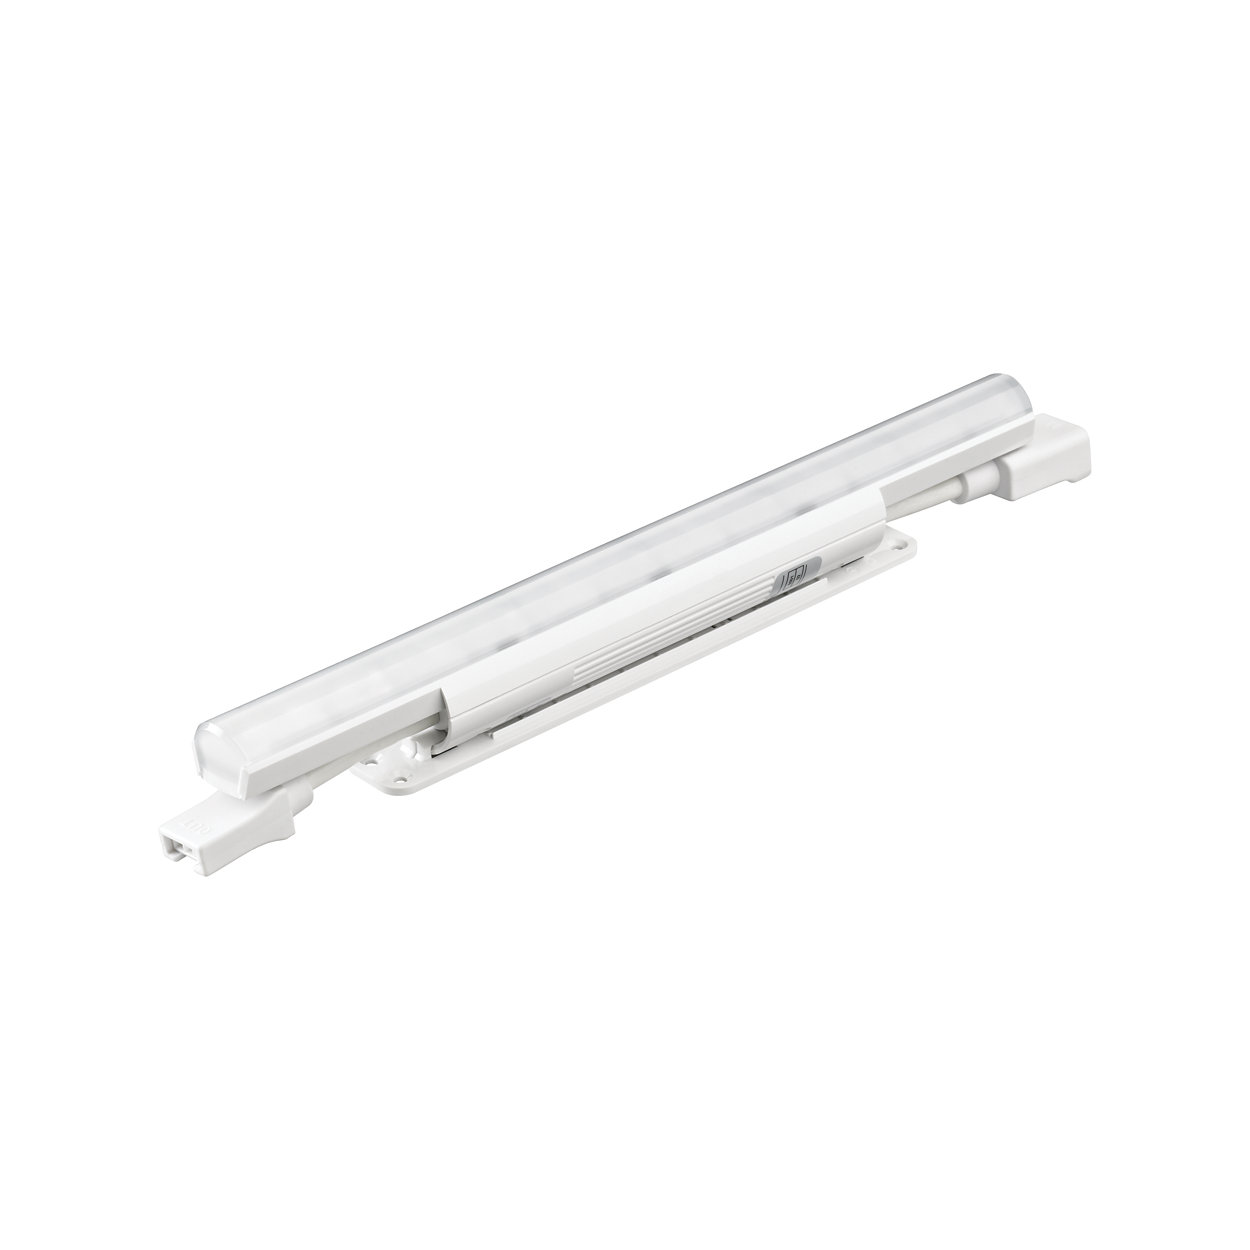 iColor Cove QLX Powercore – performance line-voltage LED cove and accent fixture with intelligent color light